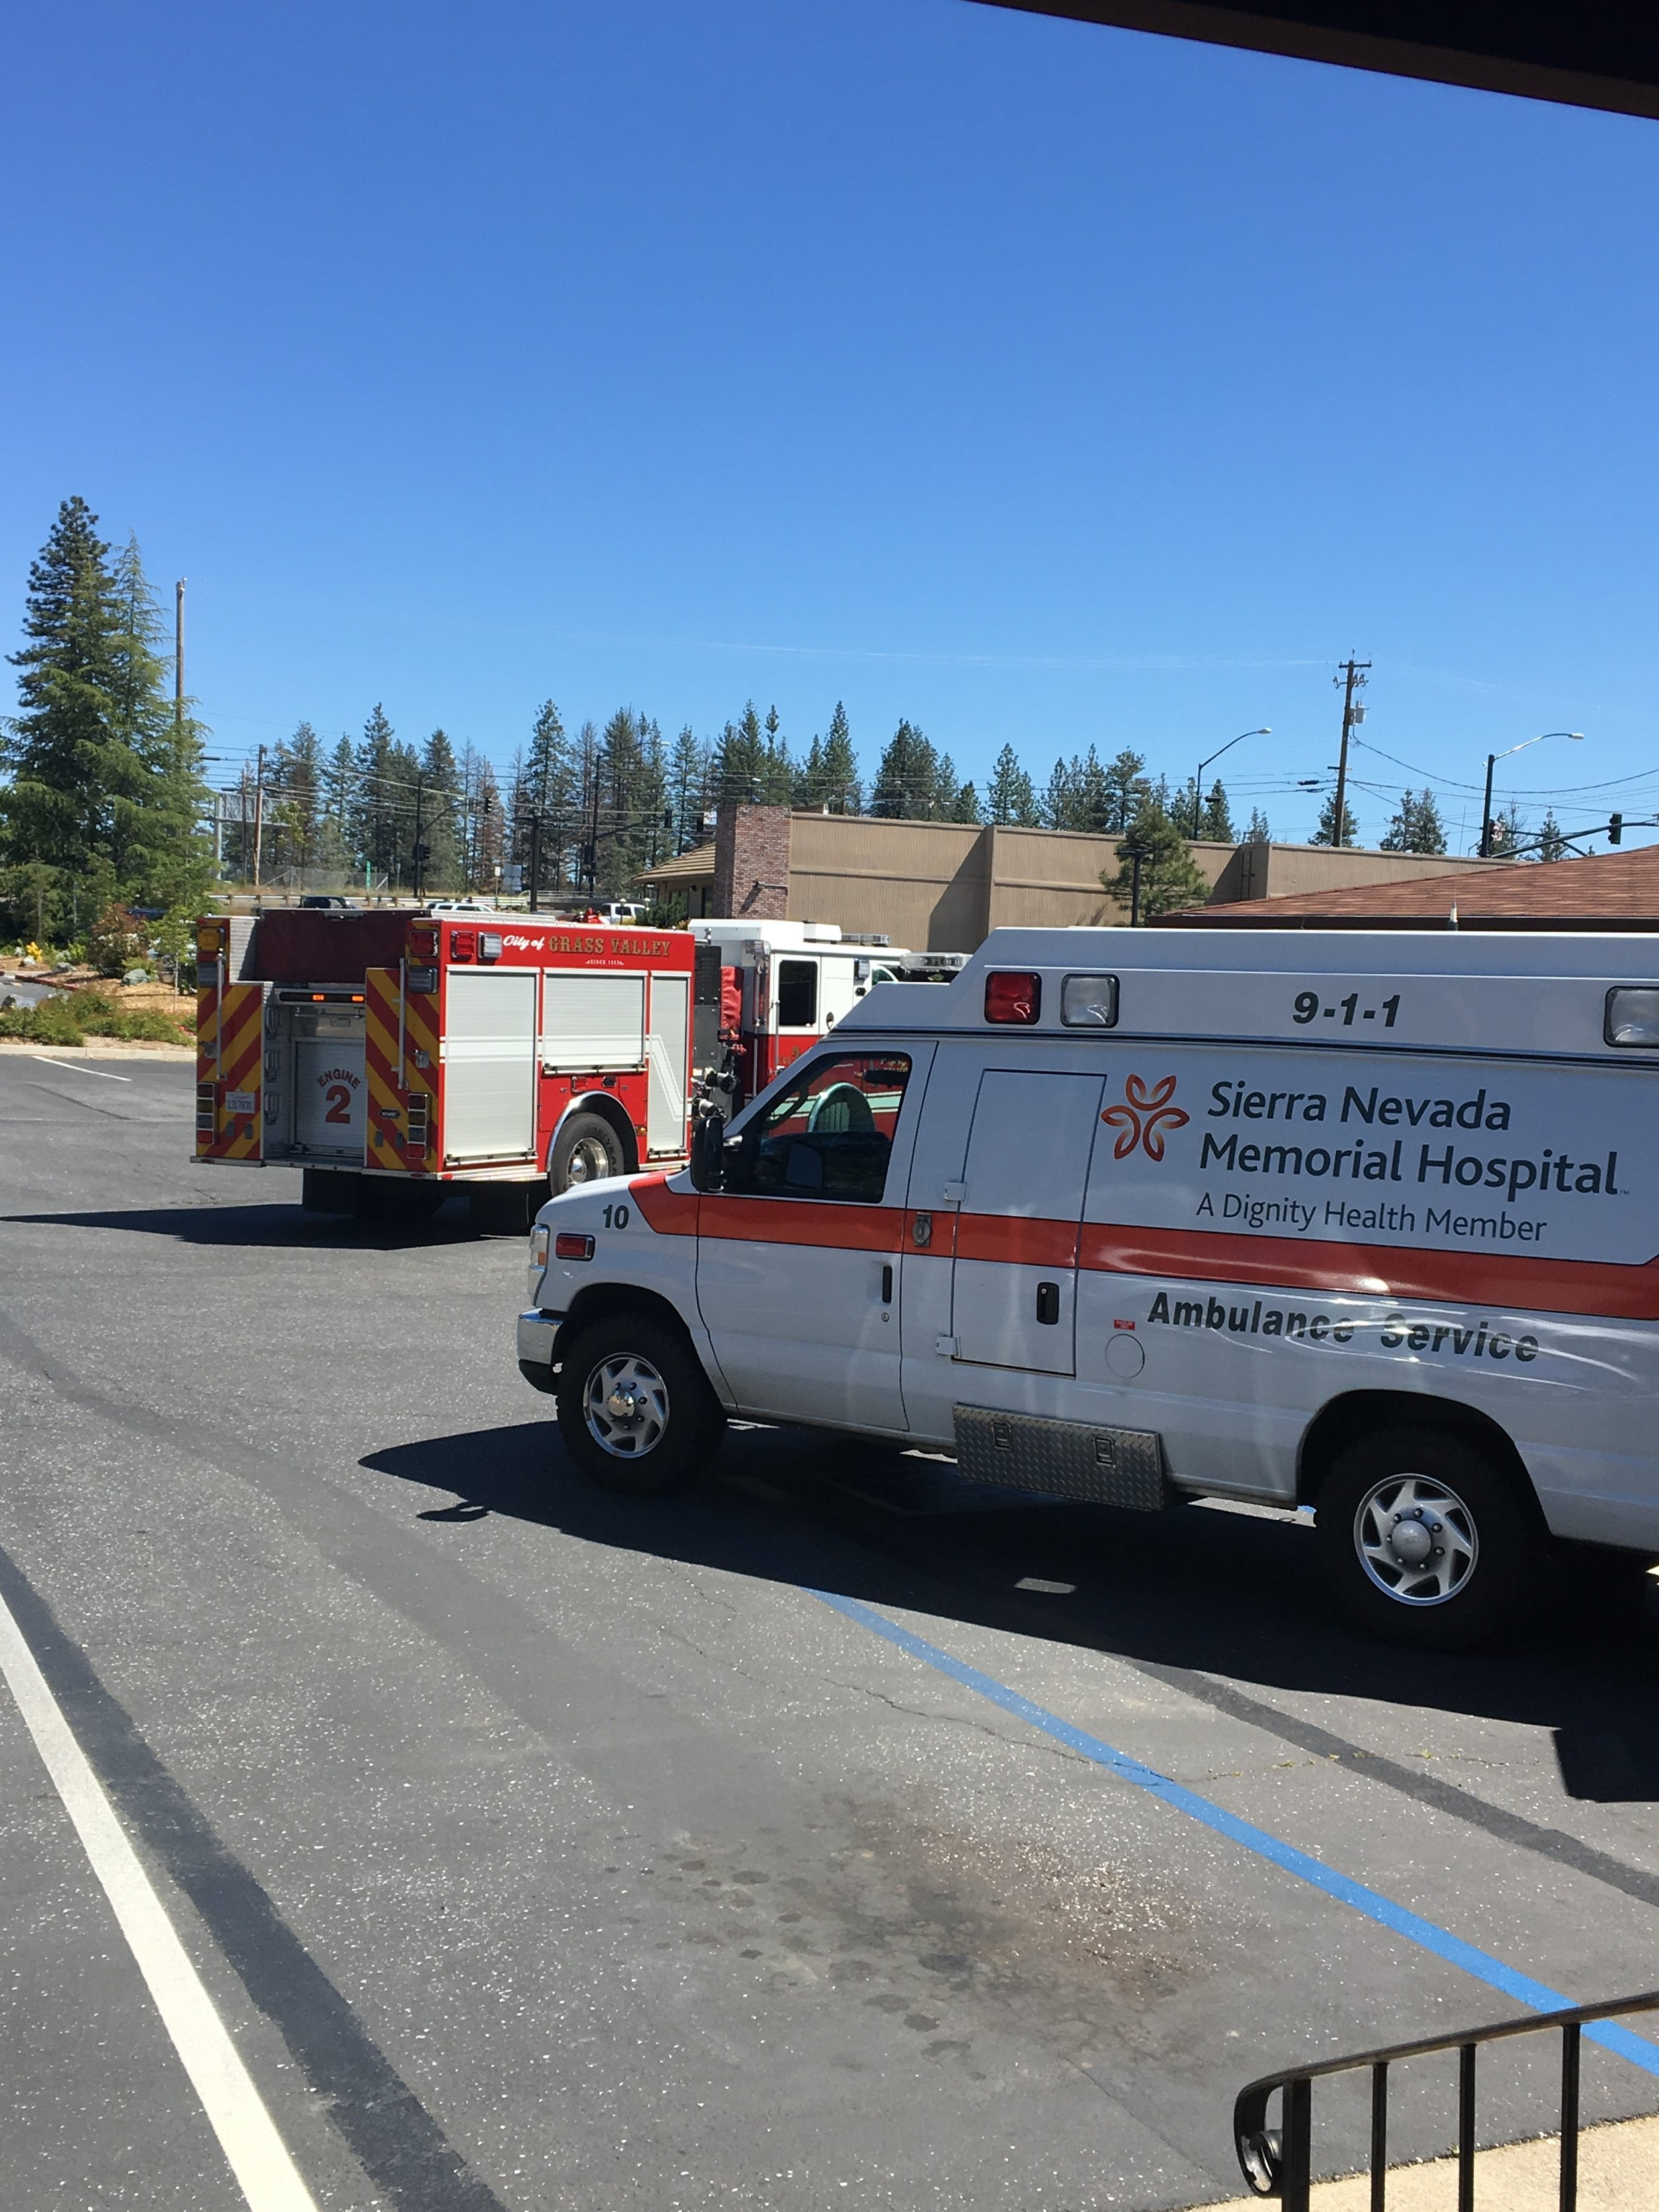 Medical: The Grass Valley Fire Department provides EMS to the community with the help of Sierra Nevada Ambulance. When a 911 call is received for a medical emergency our dispatch center will send one fire engine and one ambulance. The fire engine is dispatched because we are usually closer to the call than the ambulance, therefore can provide medical care until they arrive. All members of the Grass Valley Fire Department are trained to the EMT (Emergency Medical Technician) level and act within the scope of practice approved by our local EMS agency.